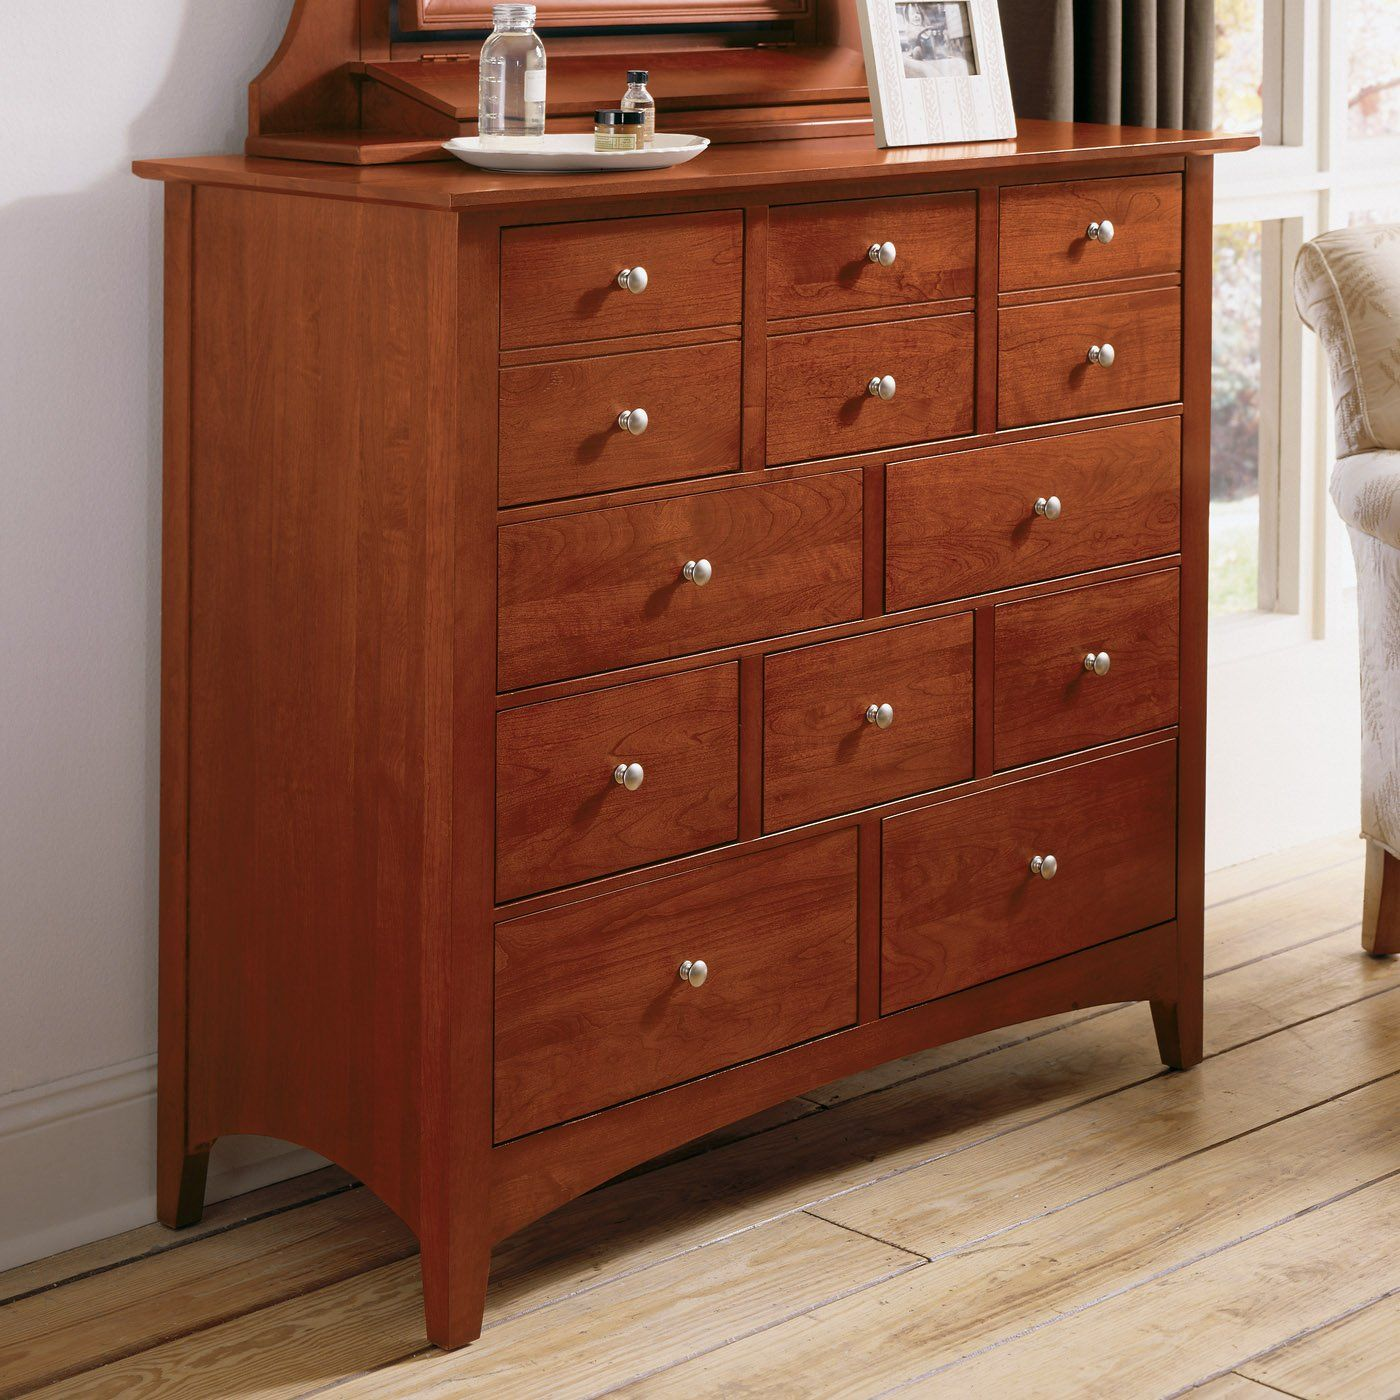 Kincaid Furniture 43-175 Gathering House Mule Chest, Satin Cherry ...